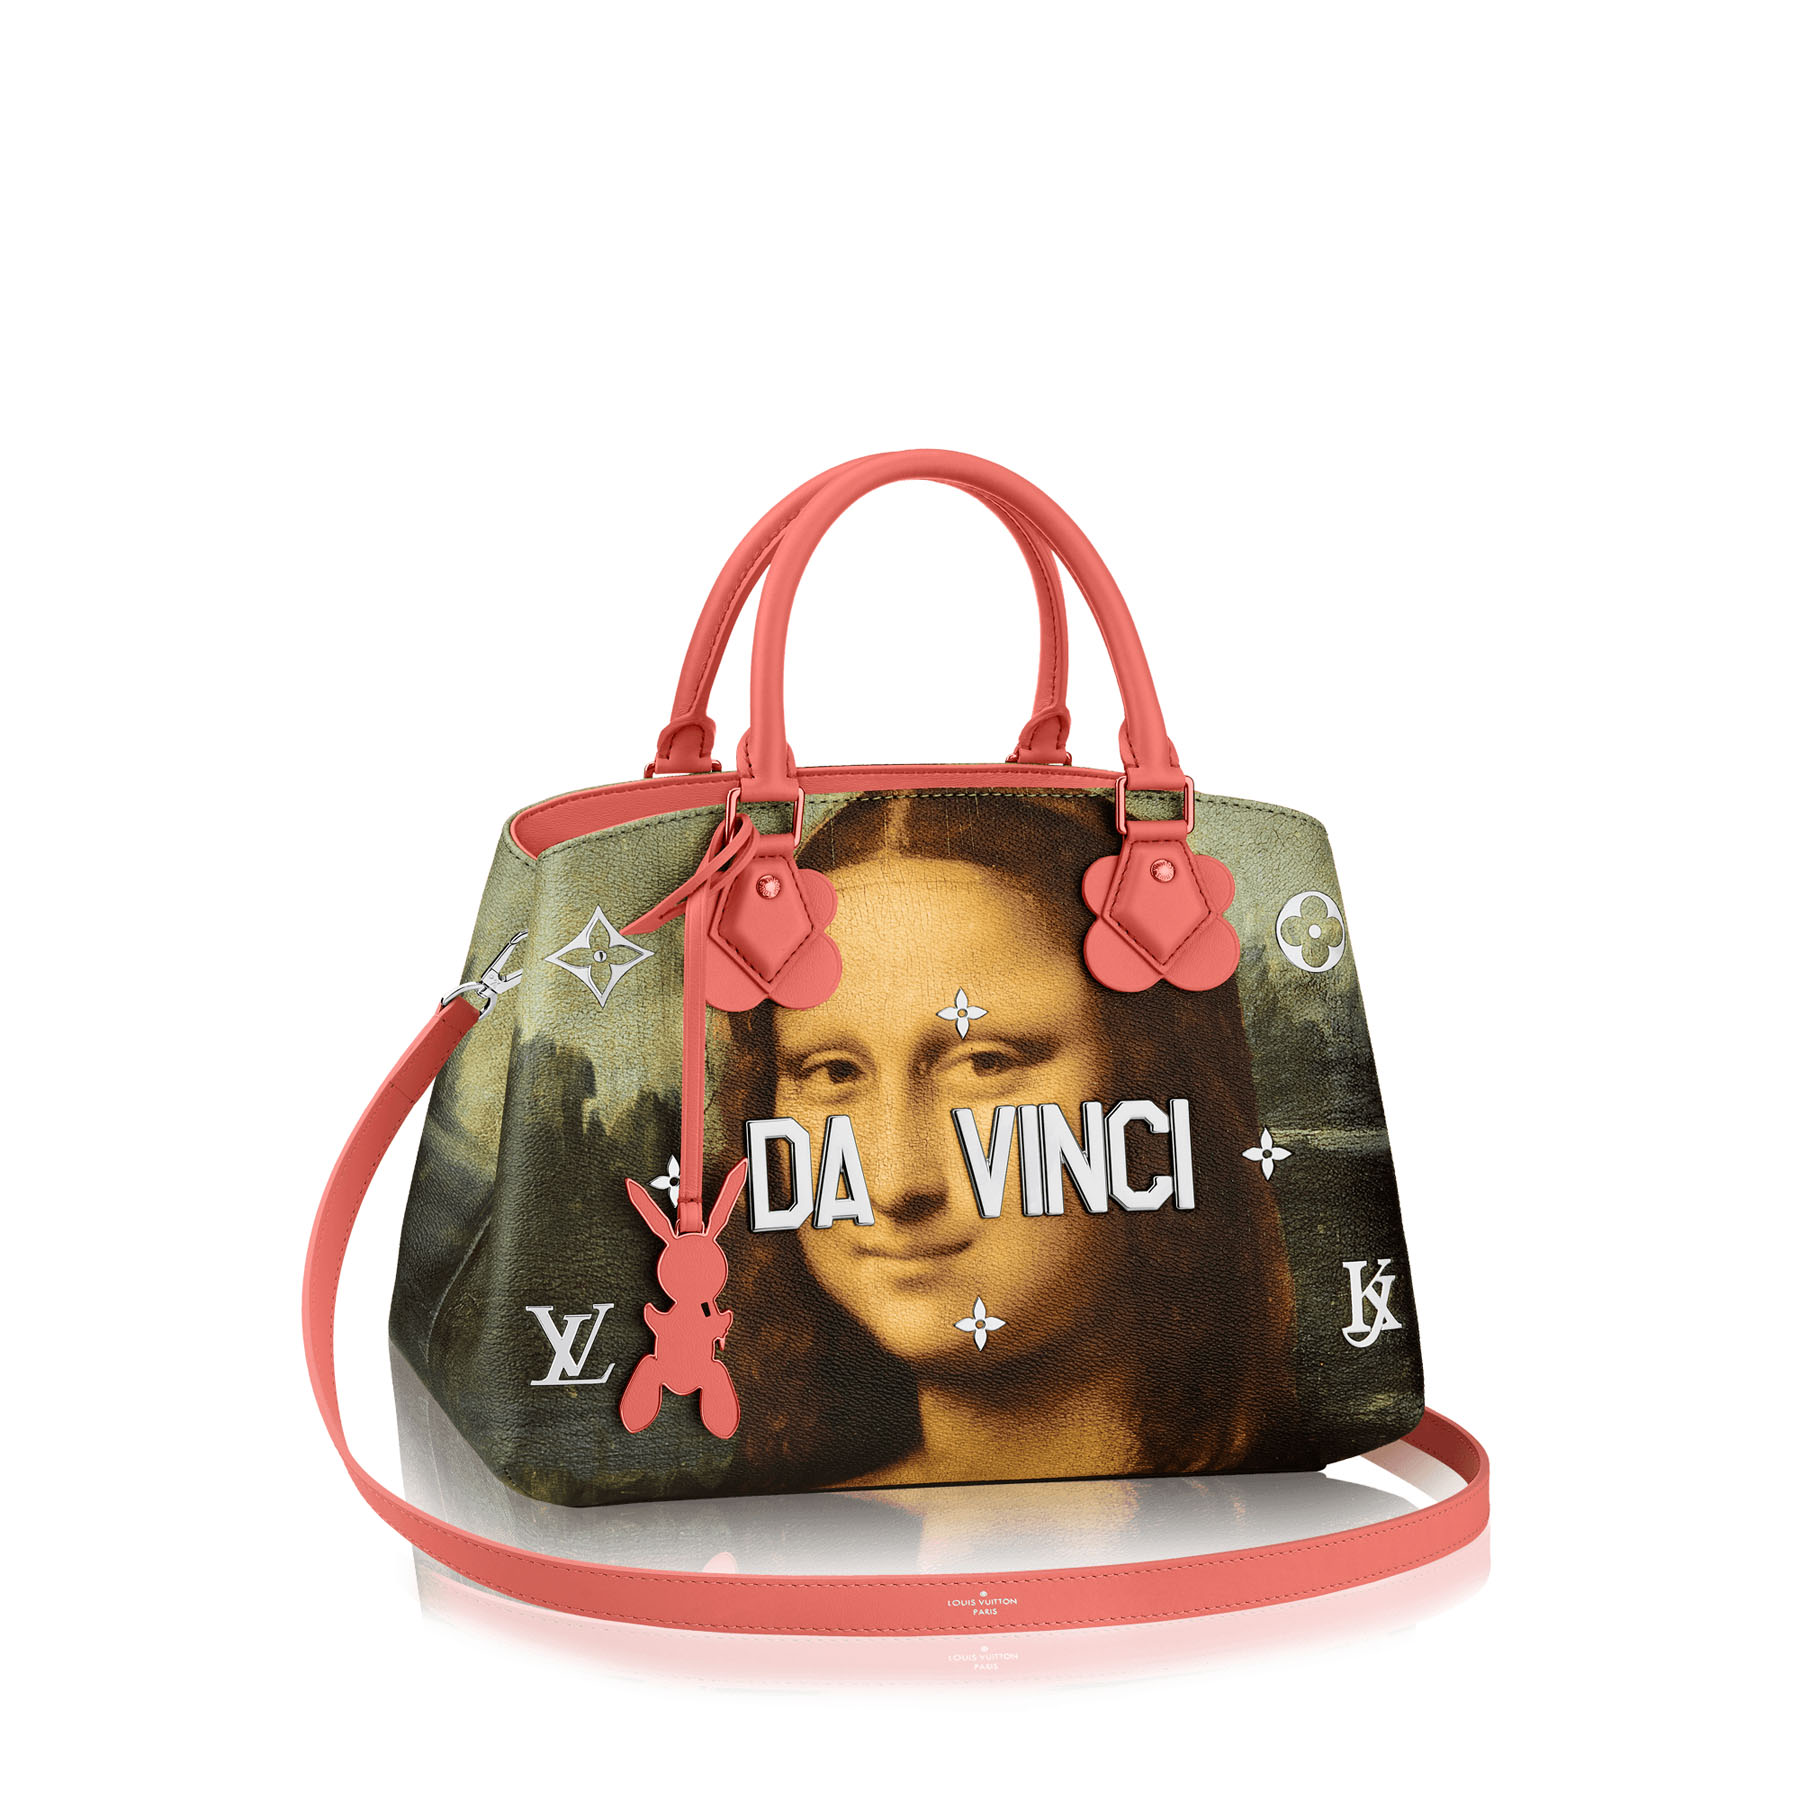 Louis-Vuitton-Jeff-Koons-Collaboration-the-impression-15